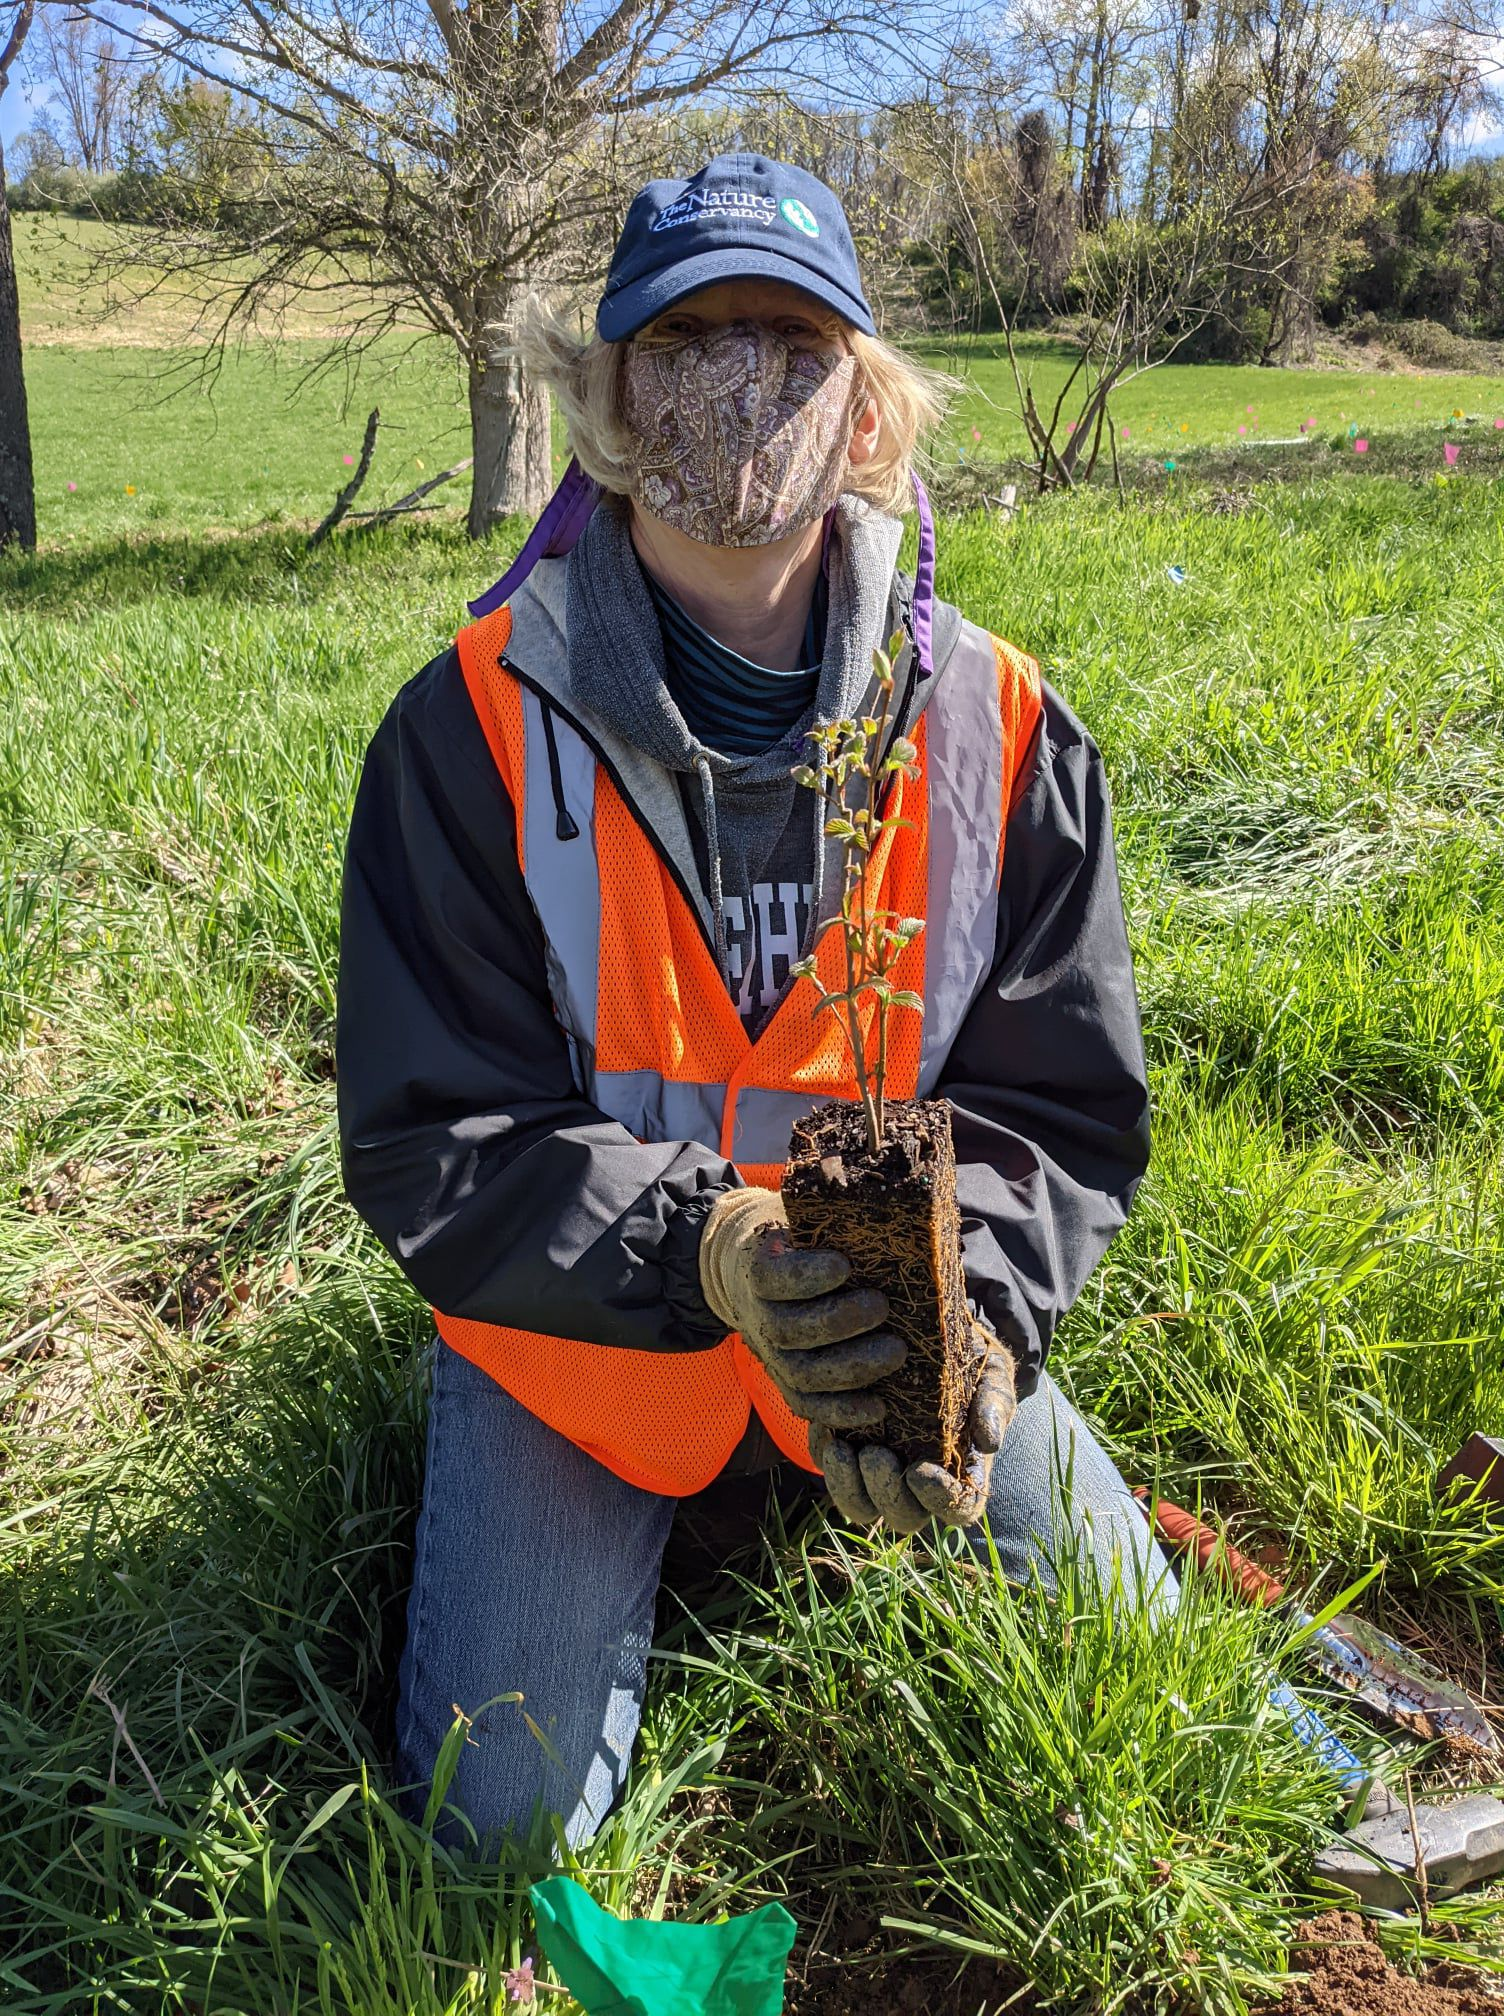 A woman wearing a face mask and an orange safety vest kneels on the ground holding a small plant with long roots, ready to be planted in the ground.